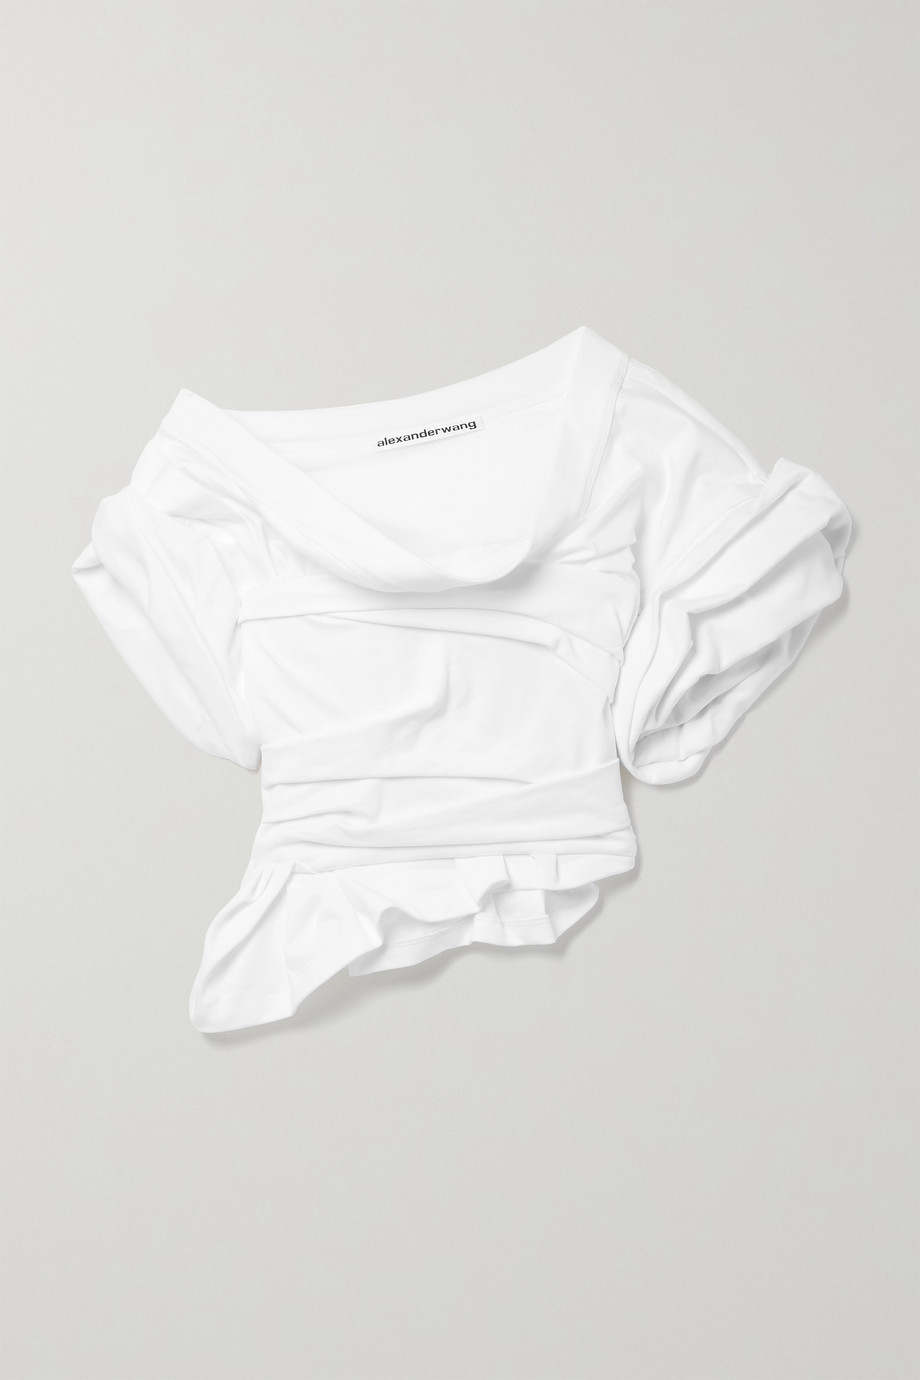 Alexander Wang One-shoulder gathered cotton-jersey top